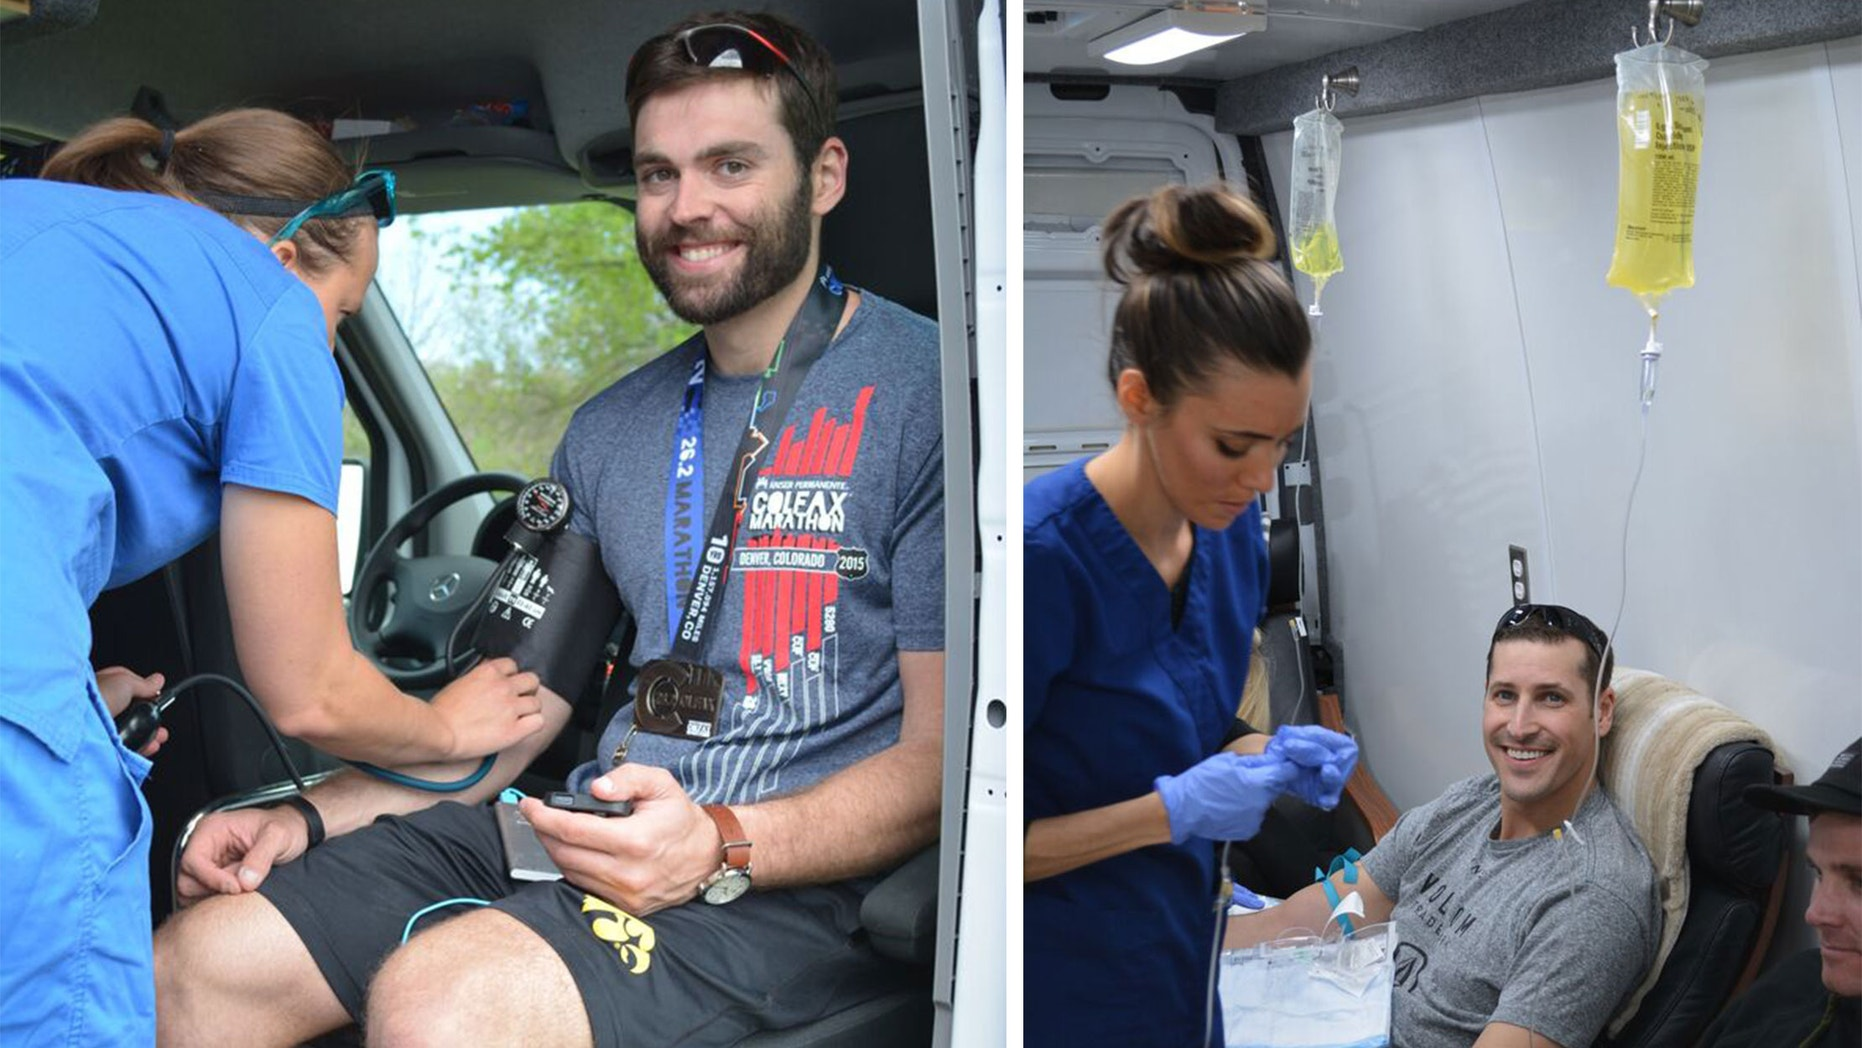 A runner gets prepped for an IV after the Colfax Half Marathon in the Onus iV Hydration mobile unit; a runner receives an infusion. (Steven Harp/Runner's World)